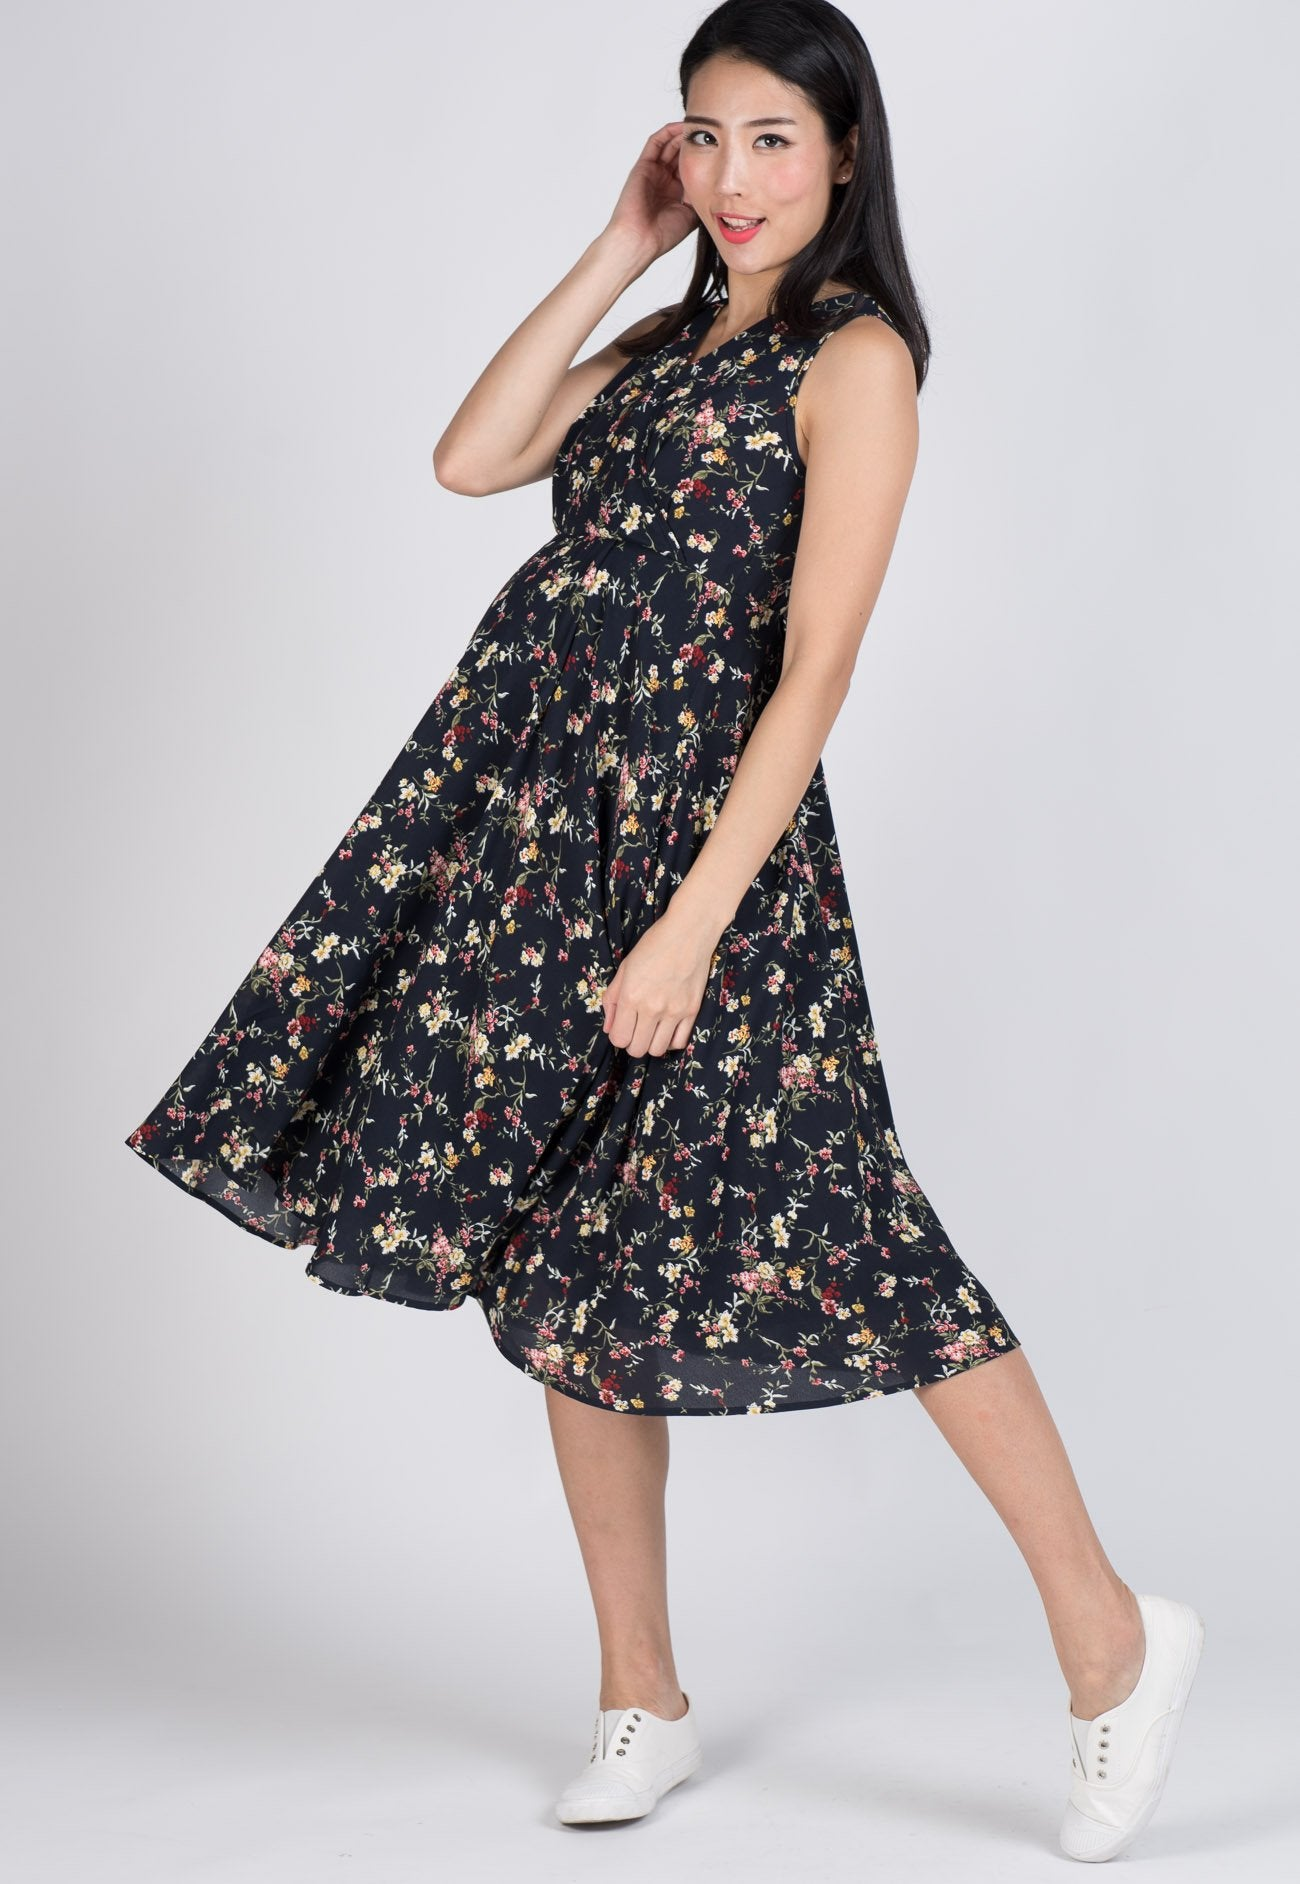 314c5b8194766 Navy Drape Floral Midi Dress by Jump Eat Cry - Maternity and nursing wear